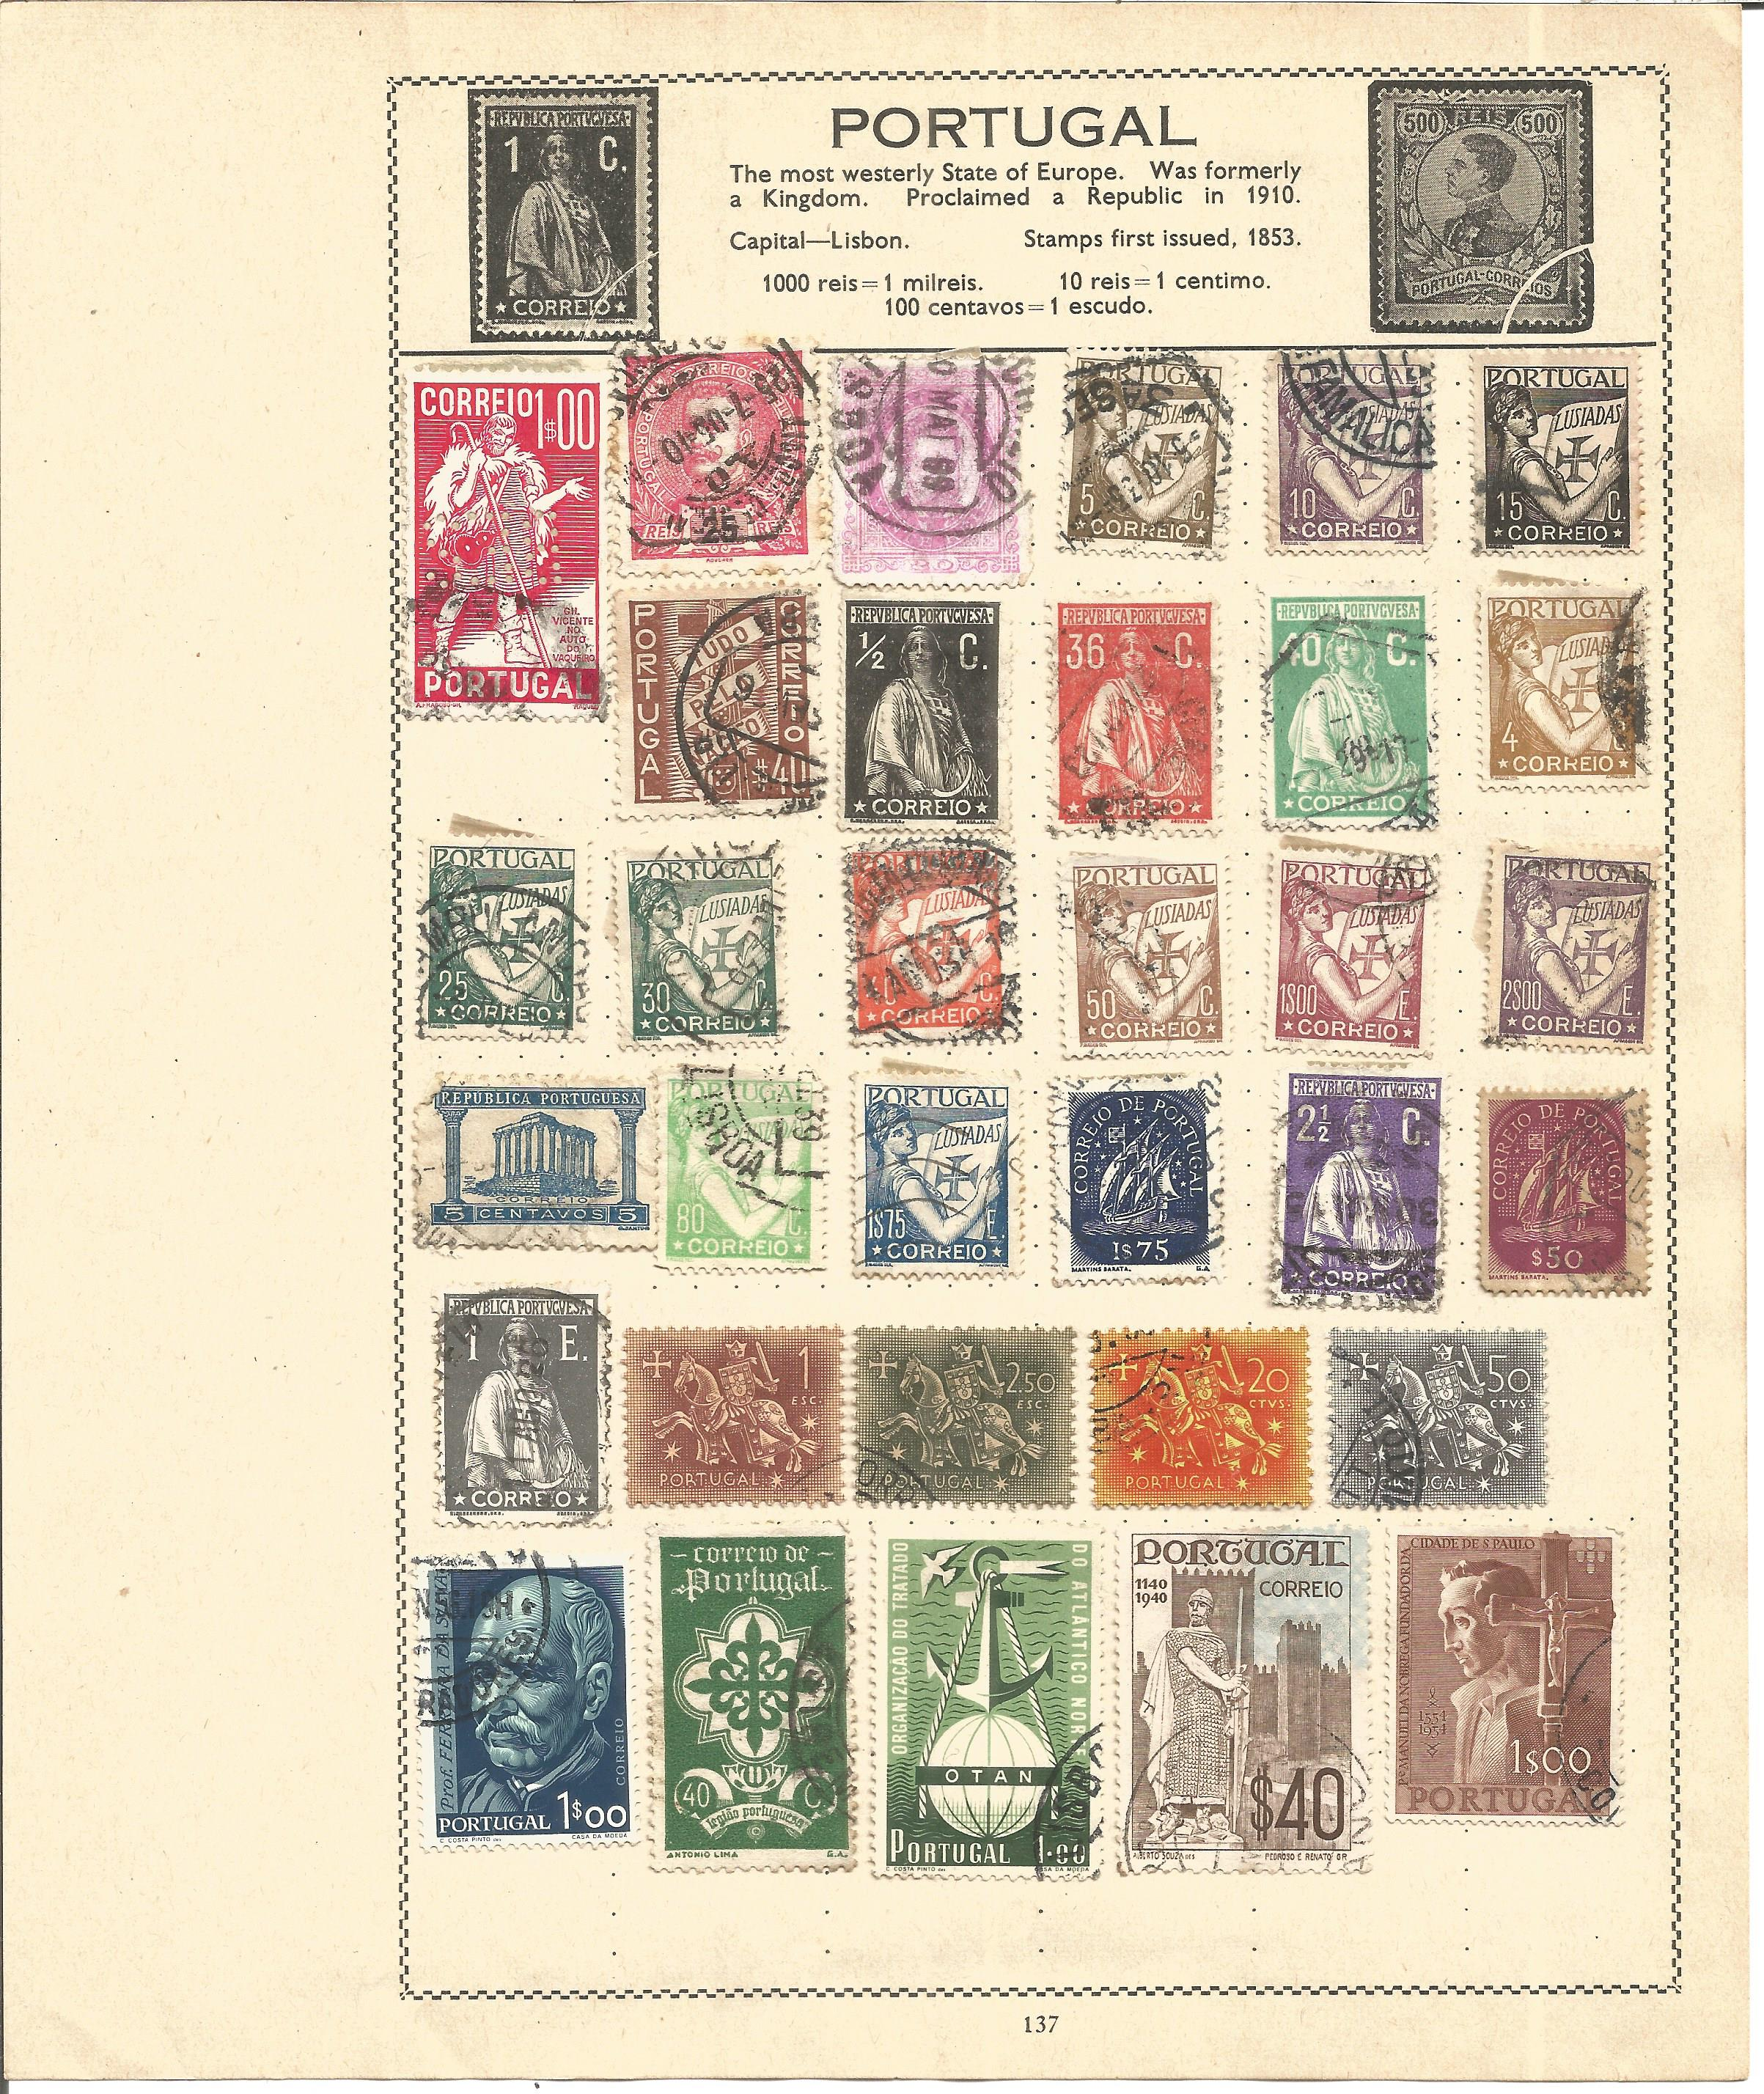 European stamp collection 6 loose album pages countries include Portugal and the Portuguese